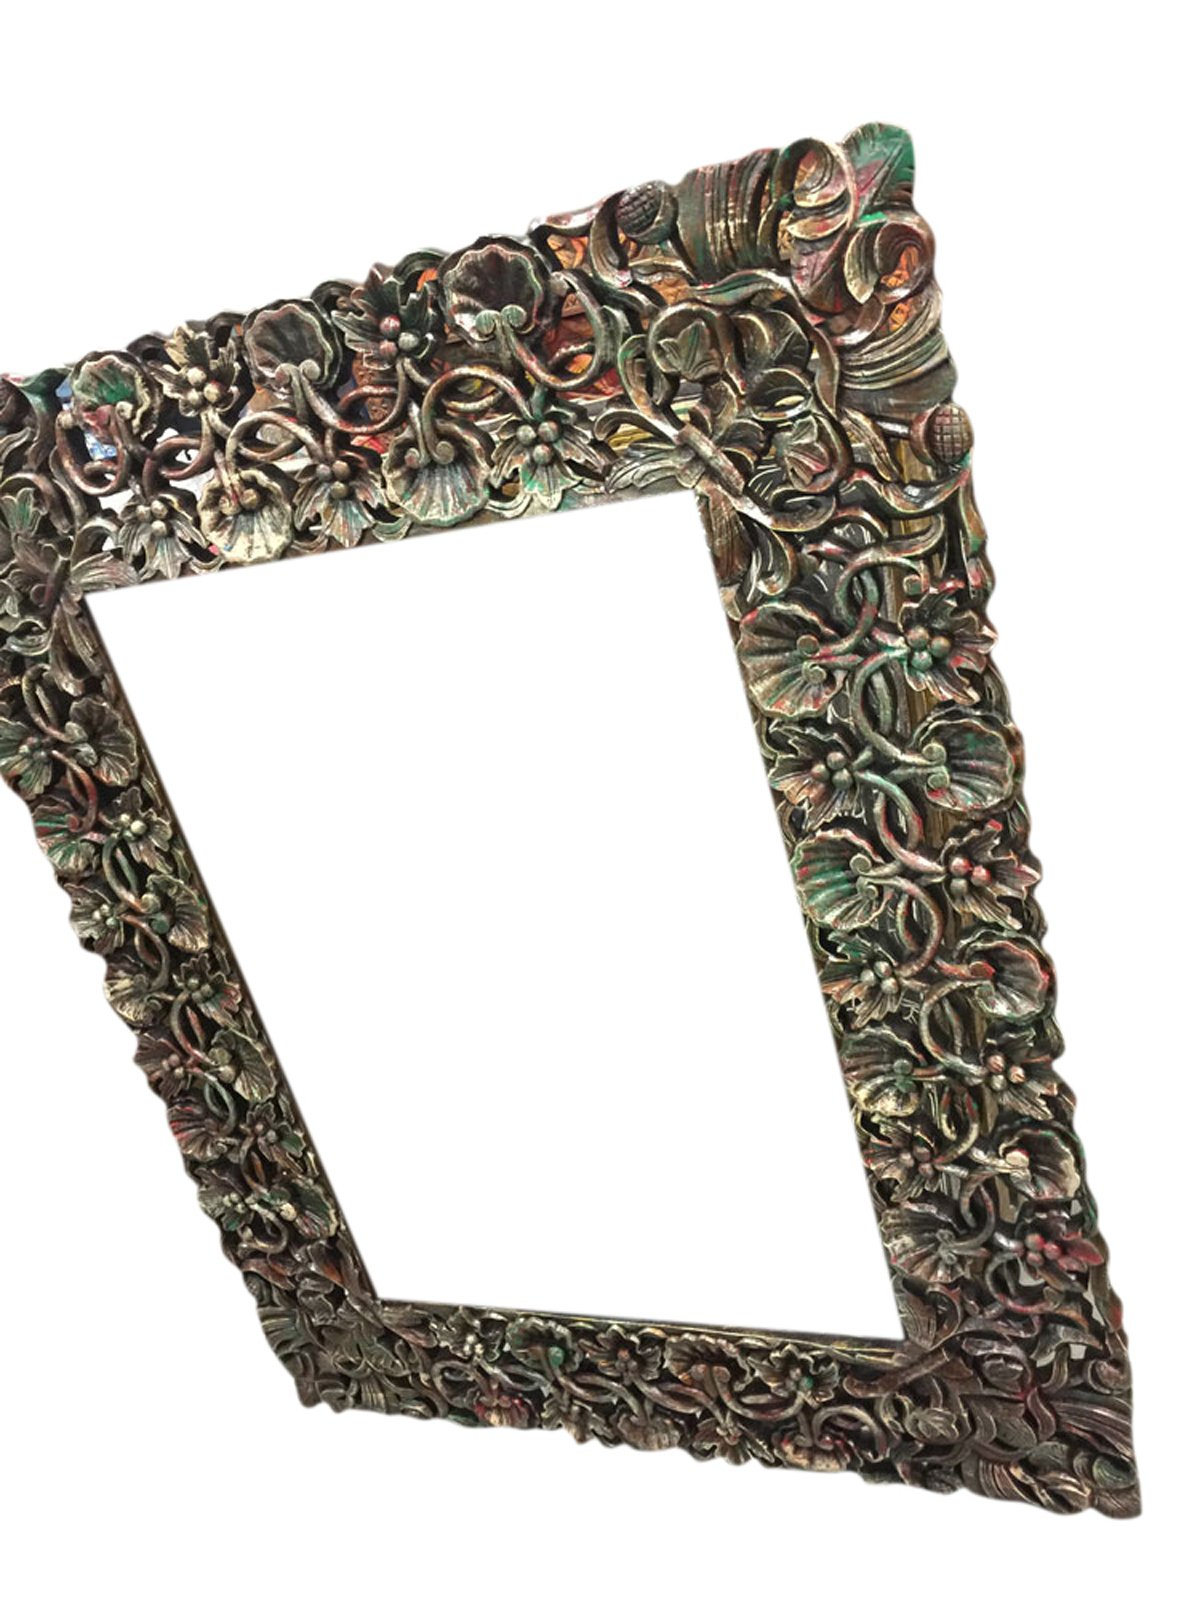 Antique miror Frame Hand Carved and Hand painted , Cherry Leaf Clusters, wall hanging Frame by Mogul Interior (Image #2)